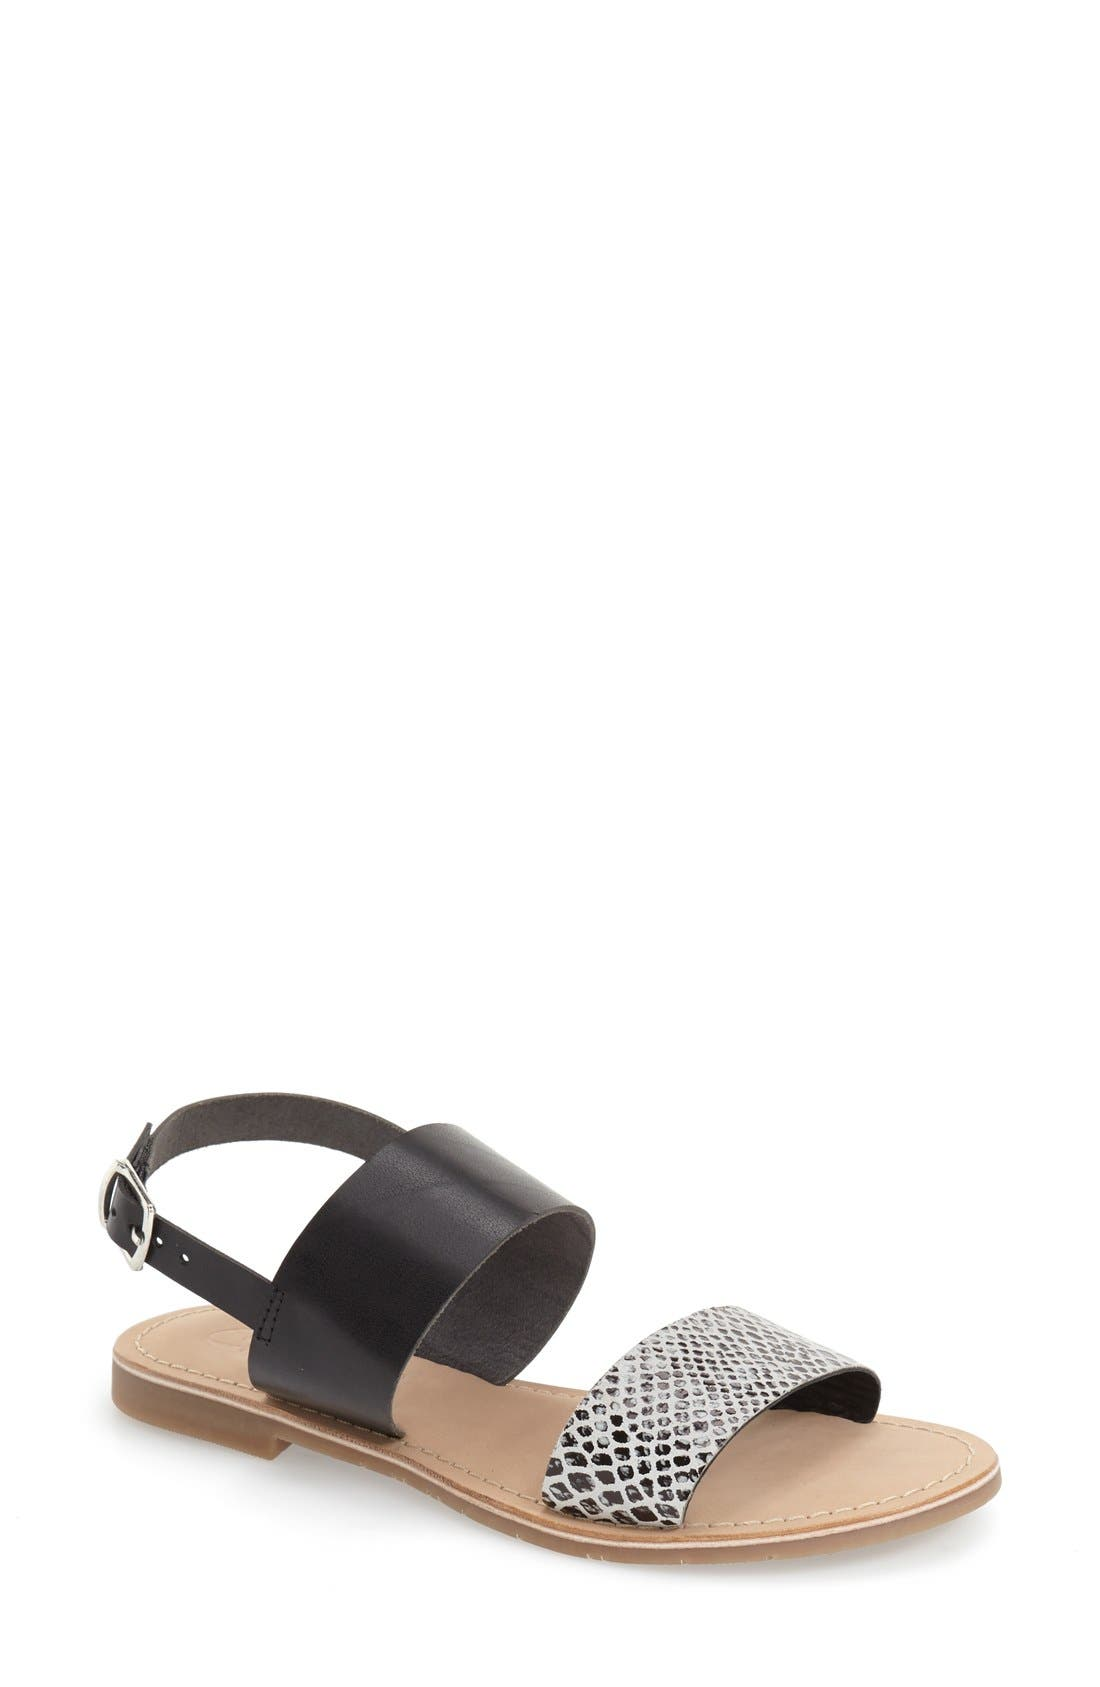 Alternate Image 1 Selected - Callisto 'Avishi' Flat Slingback Sandal (Women)